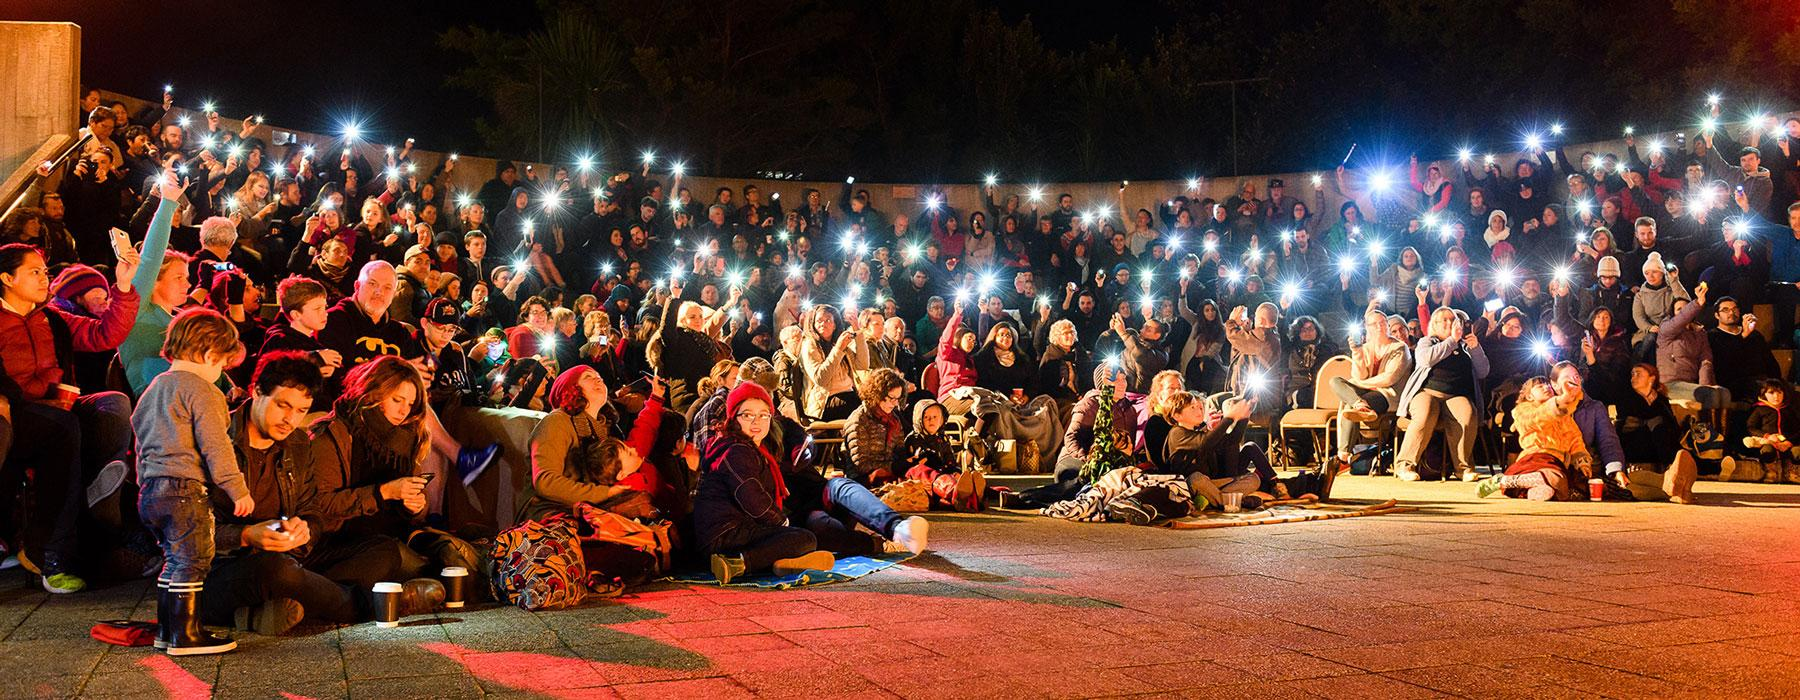 People hold lights above their heads, sat in warm clothes in the dark